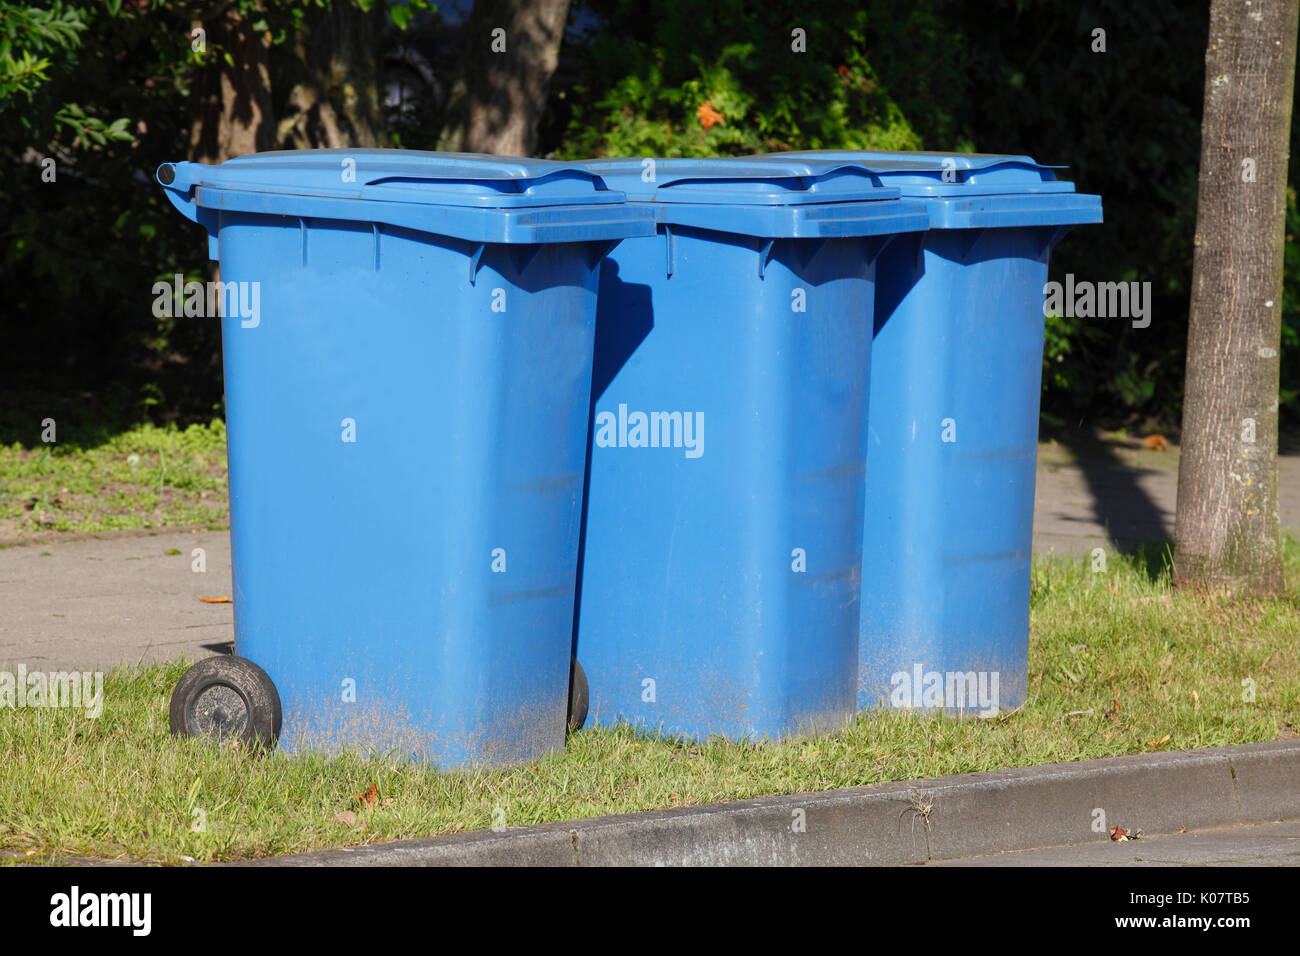 blue plastic recycling bins for waste paper Stock Photo